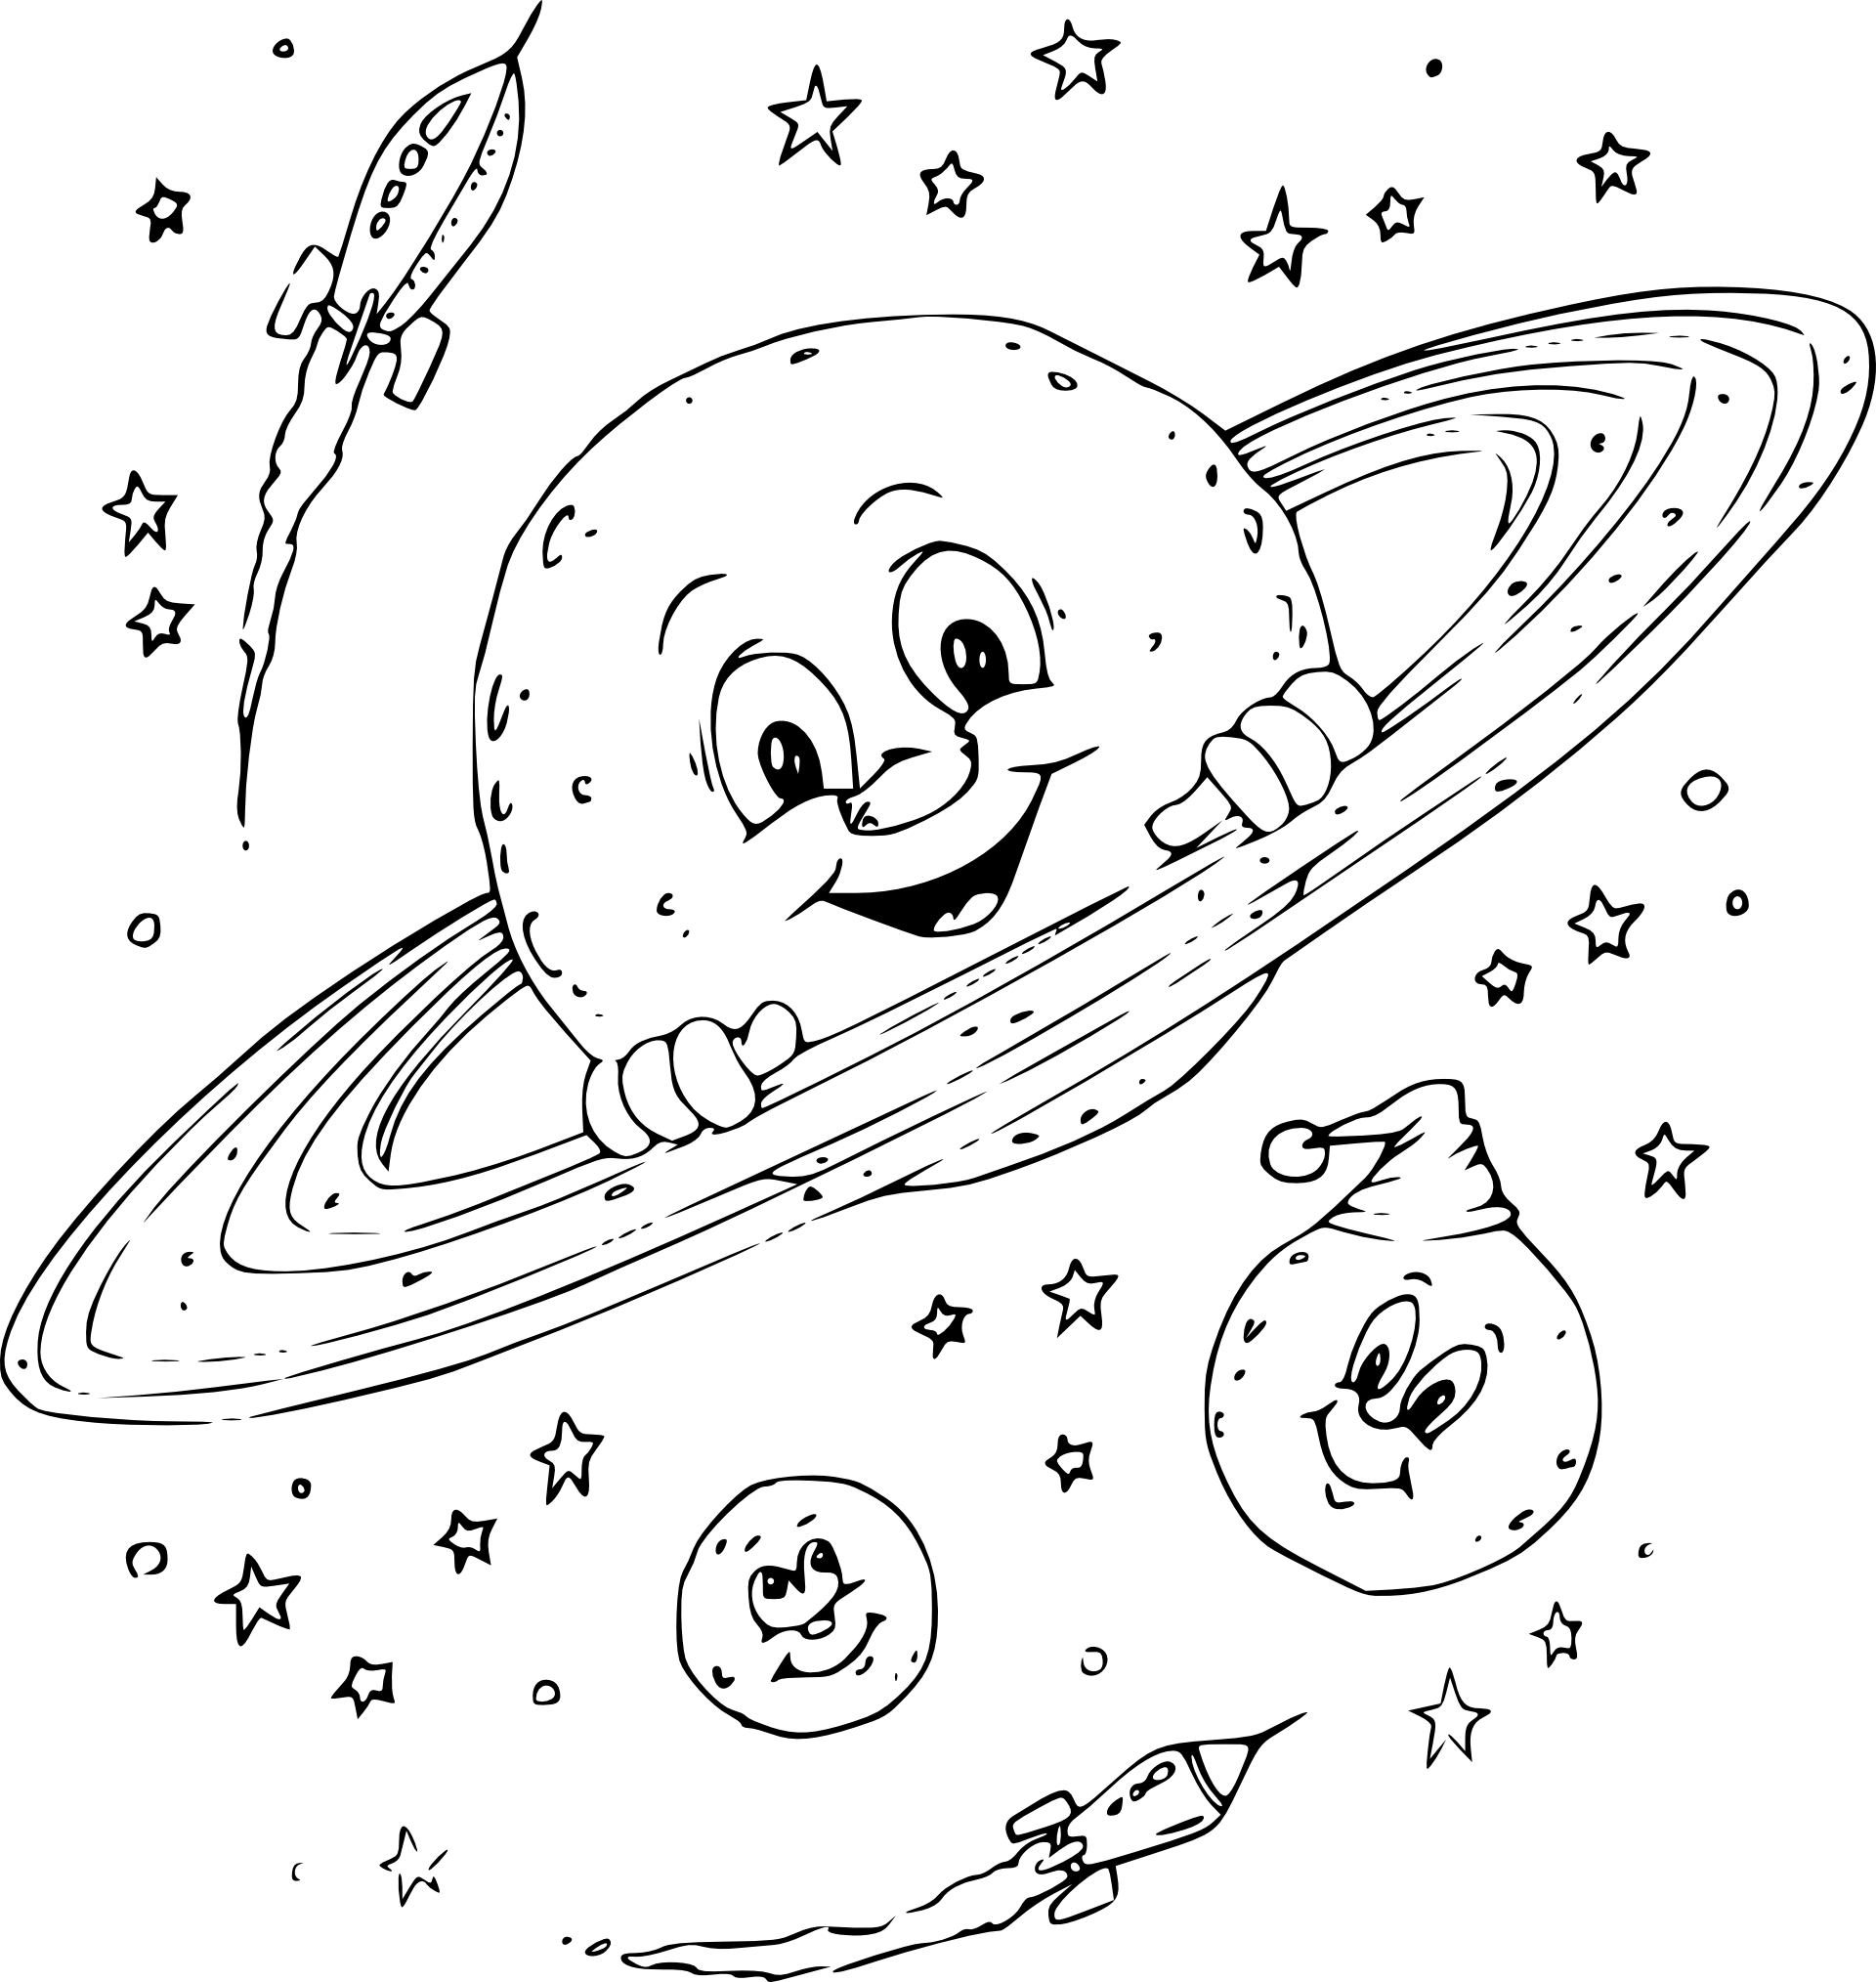 venus coloring pages outer space - photo#18